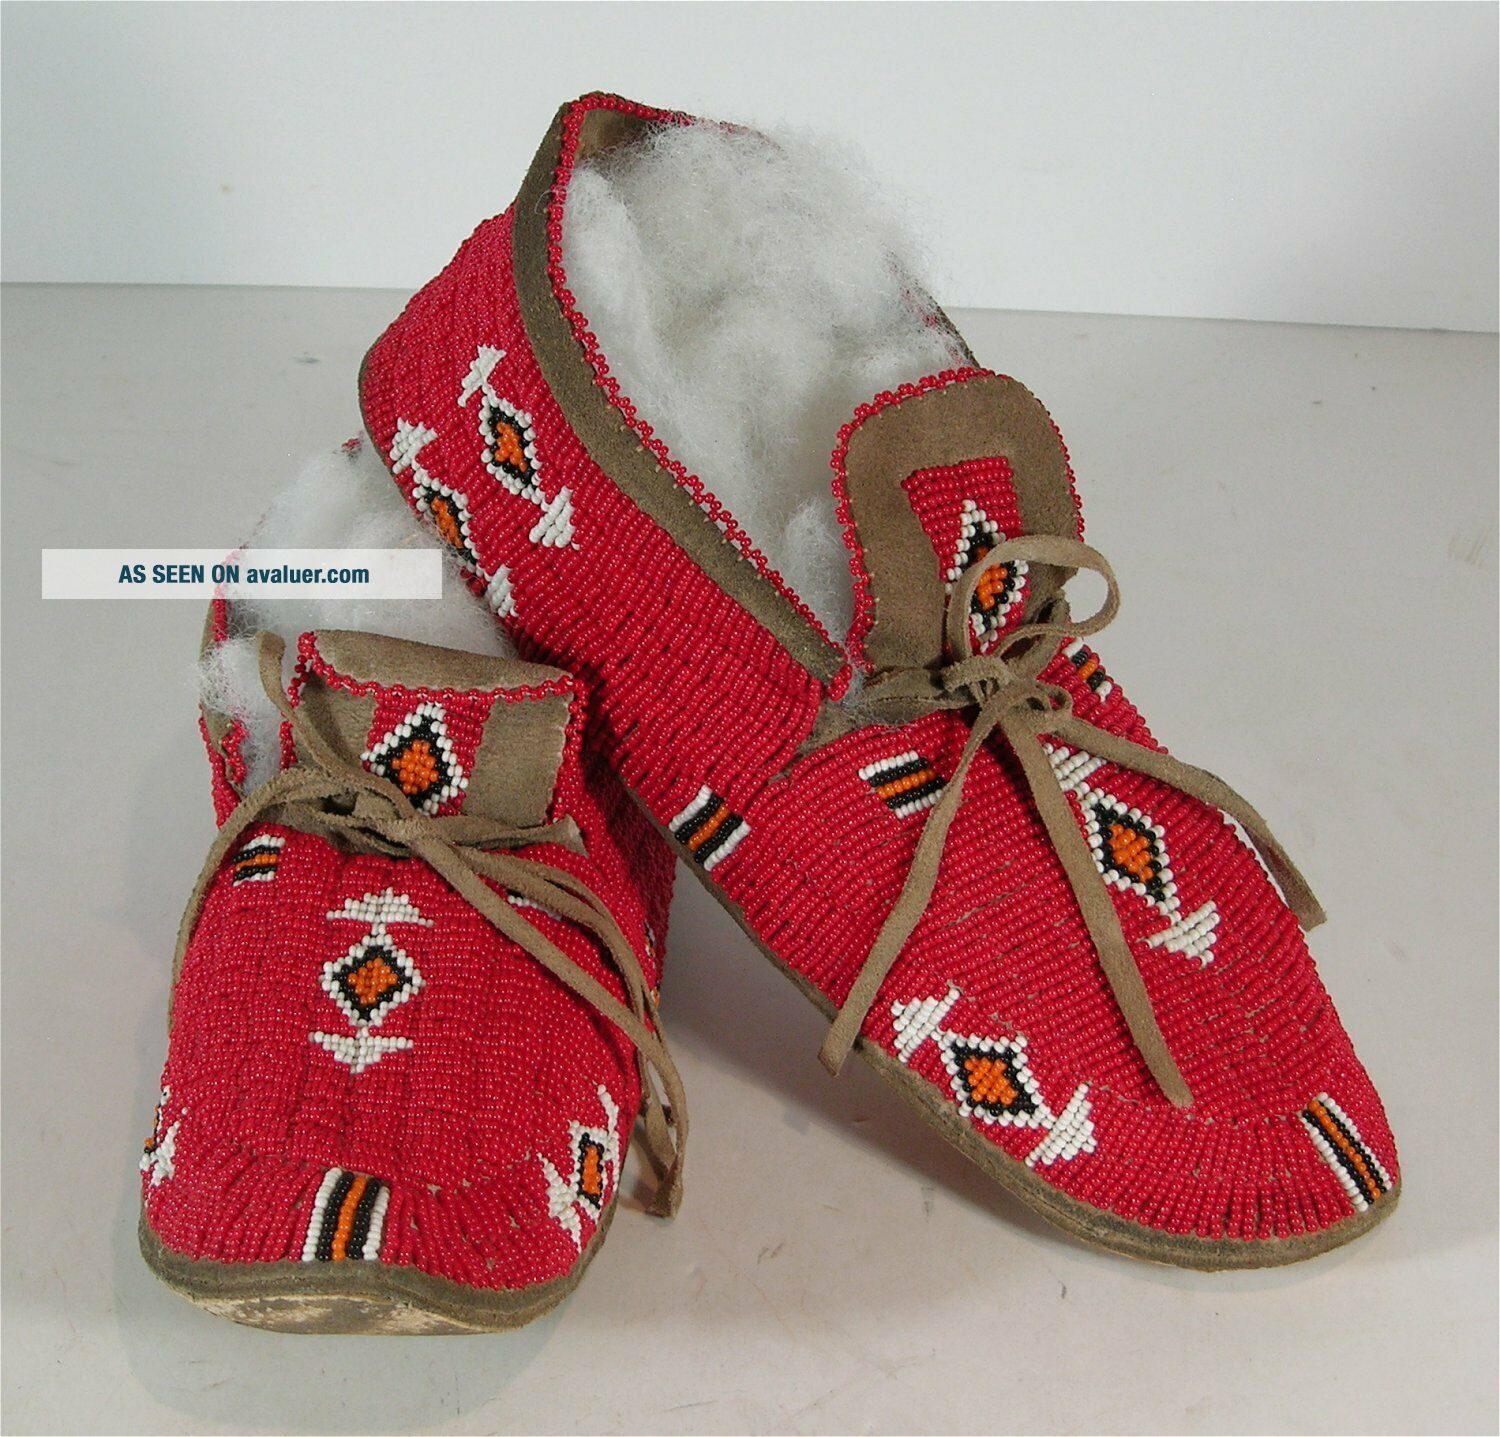 ca1920s PAIR NATIVE AMERICAN SIOUX INDIAN BEAD DECORATED HIDE MOCCASINS BEADED